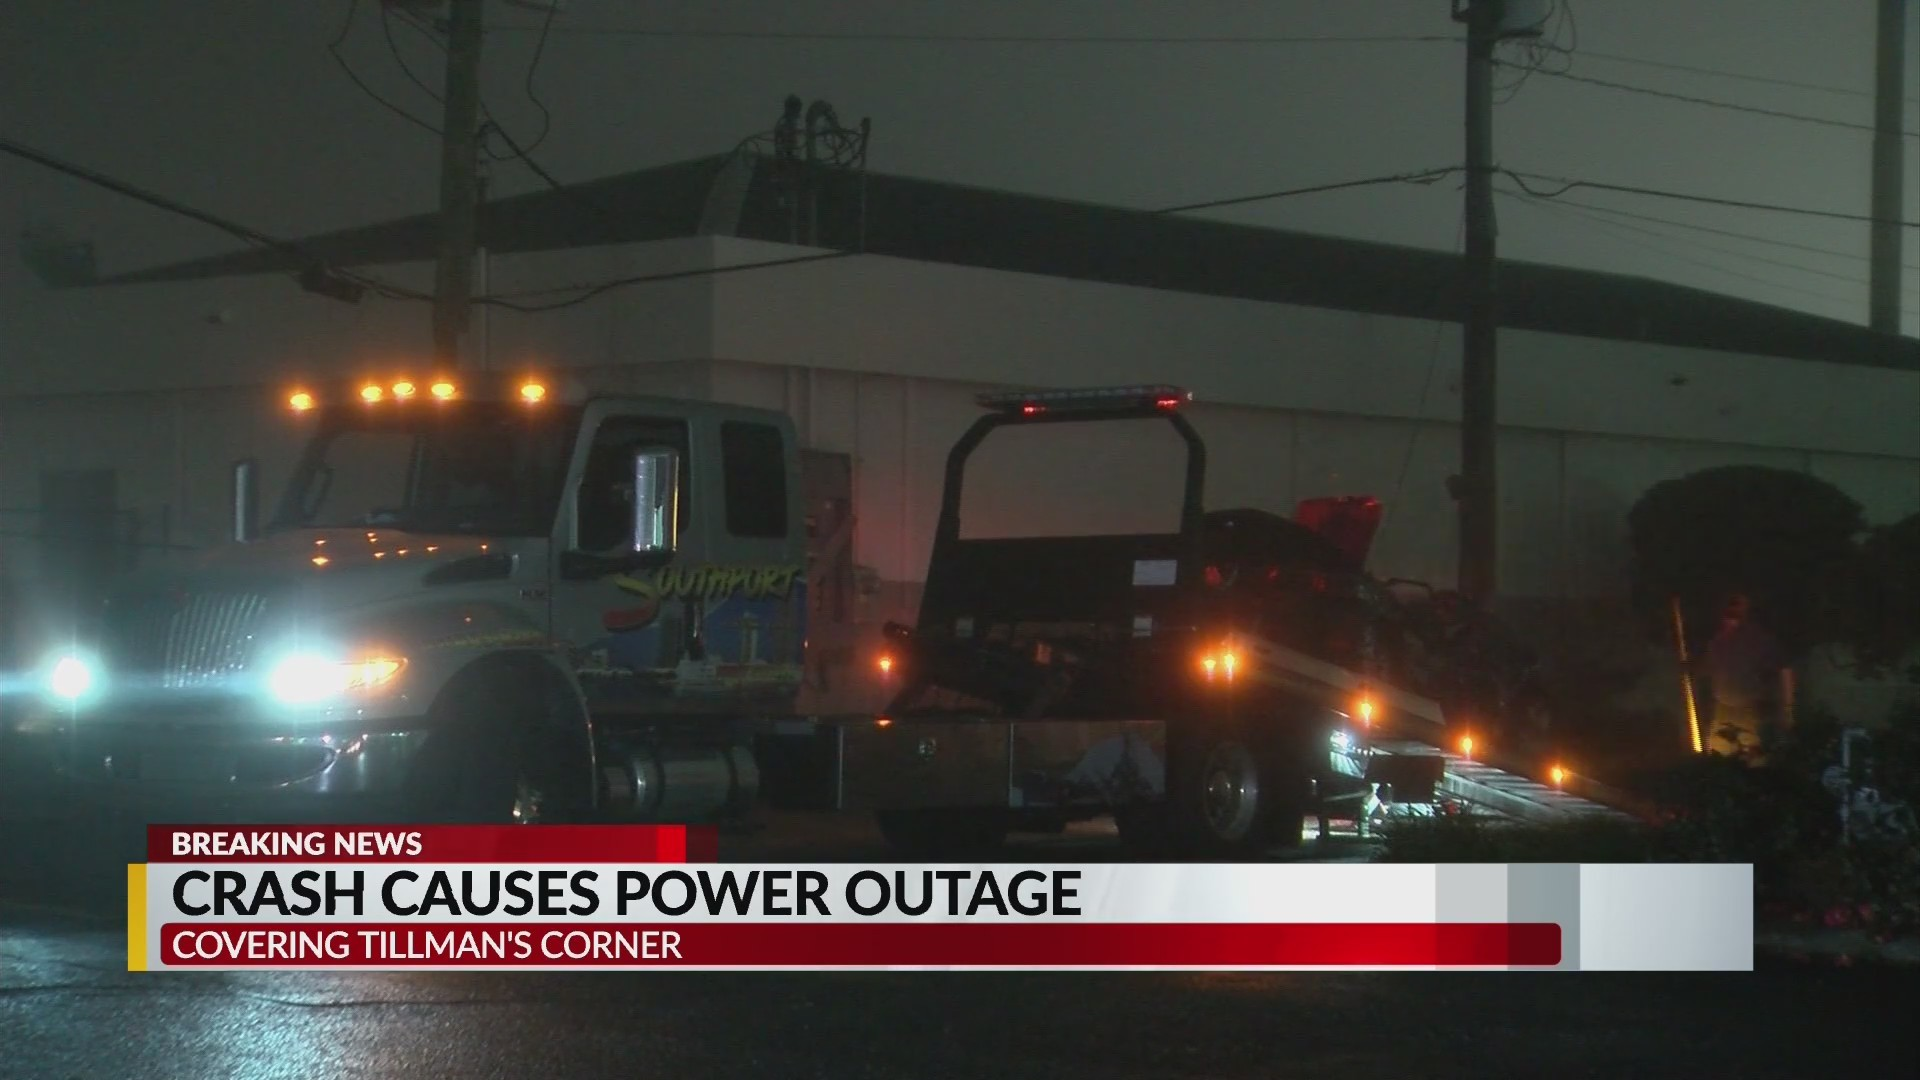 Tillman's Corner Crash and Power Outage